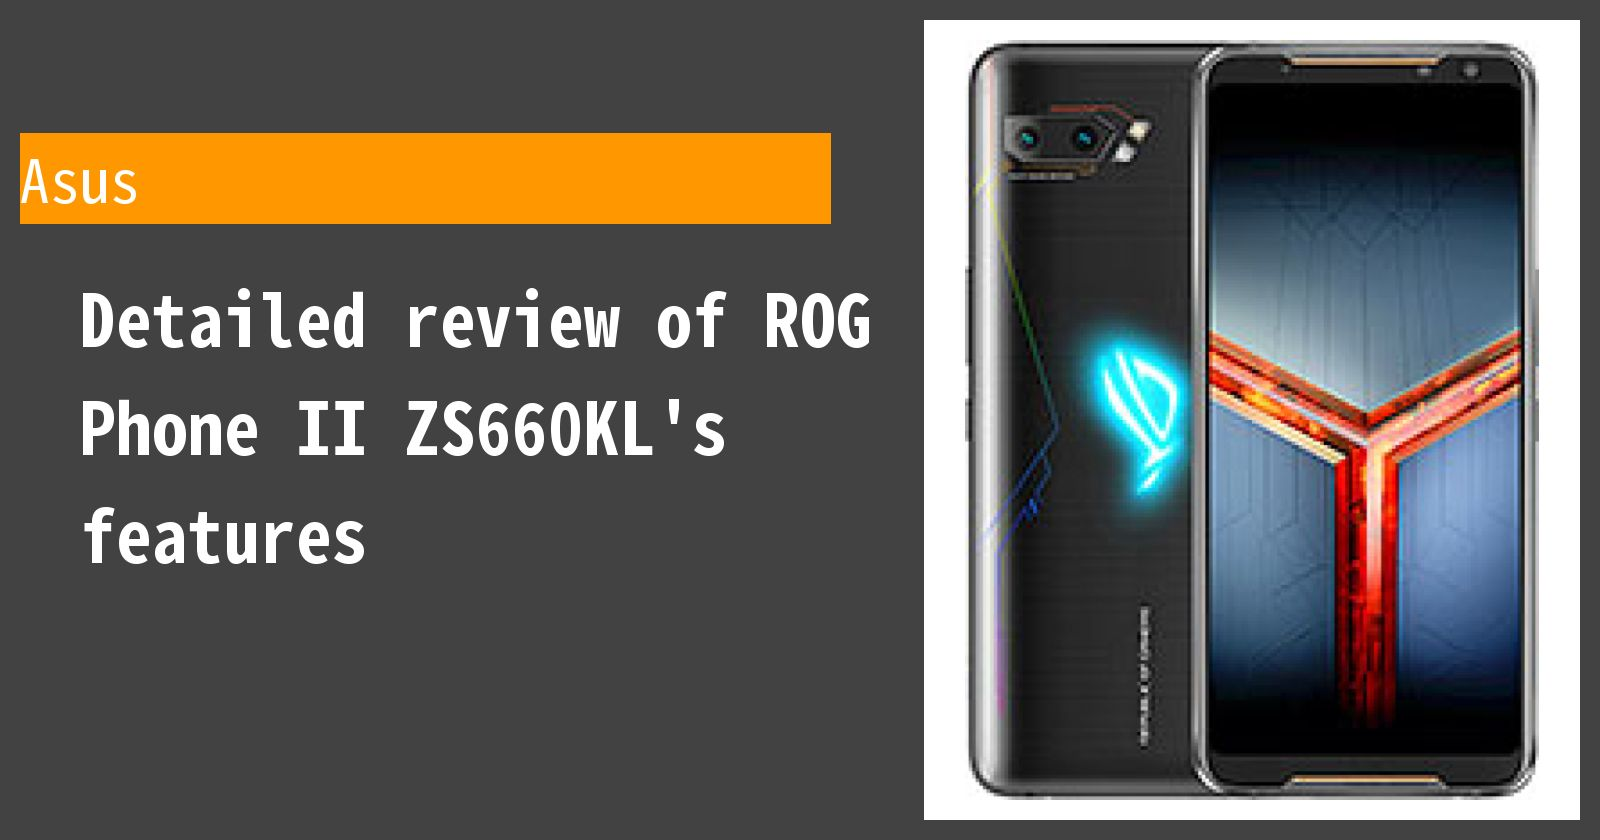 Detailed review of ROG Phone II ZS660KL's features